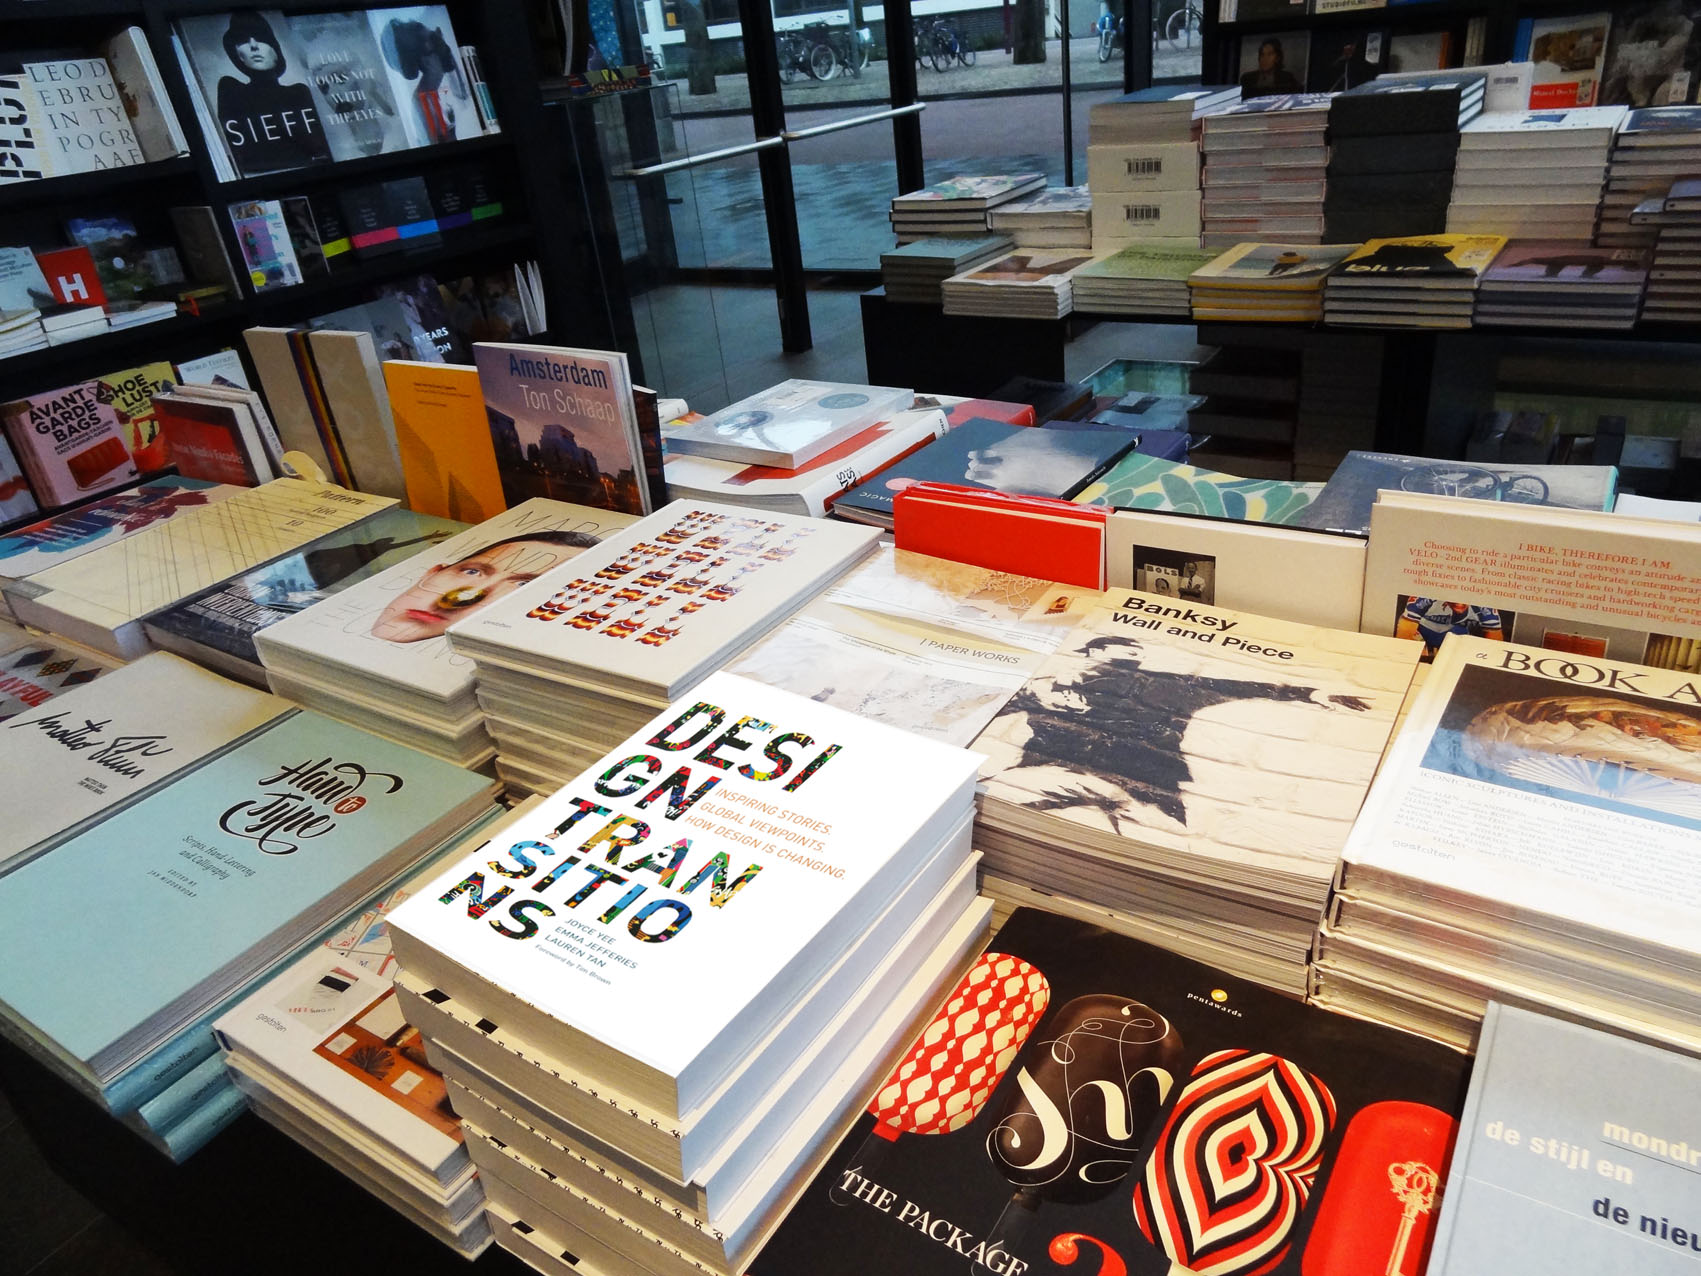 Image of the Design Transitions book in a book shop